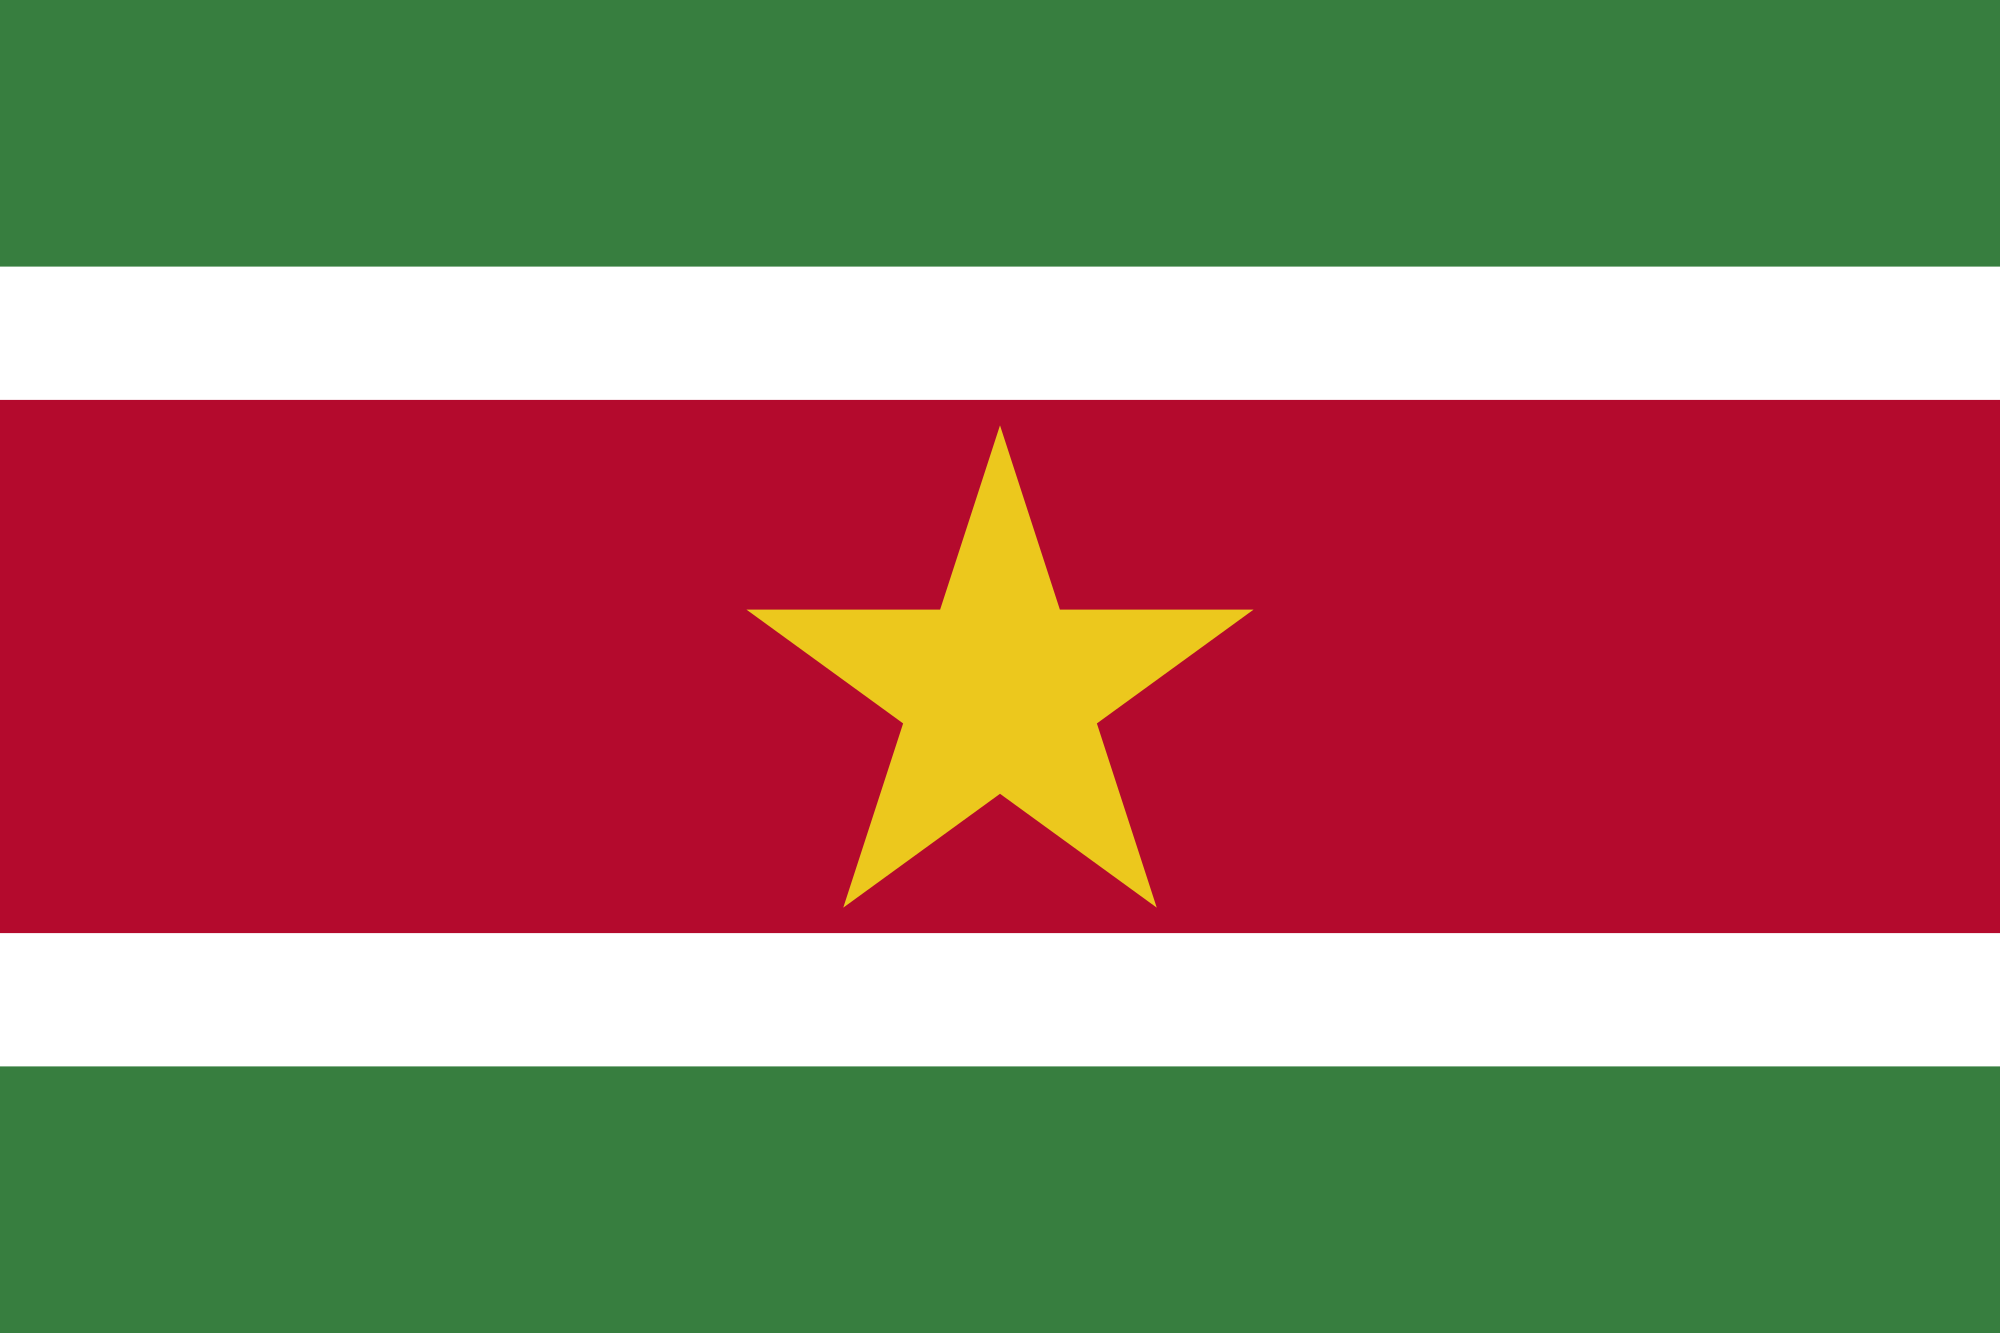 File:Flag of Suriname.svg - Wikimedia Commons